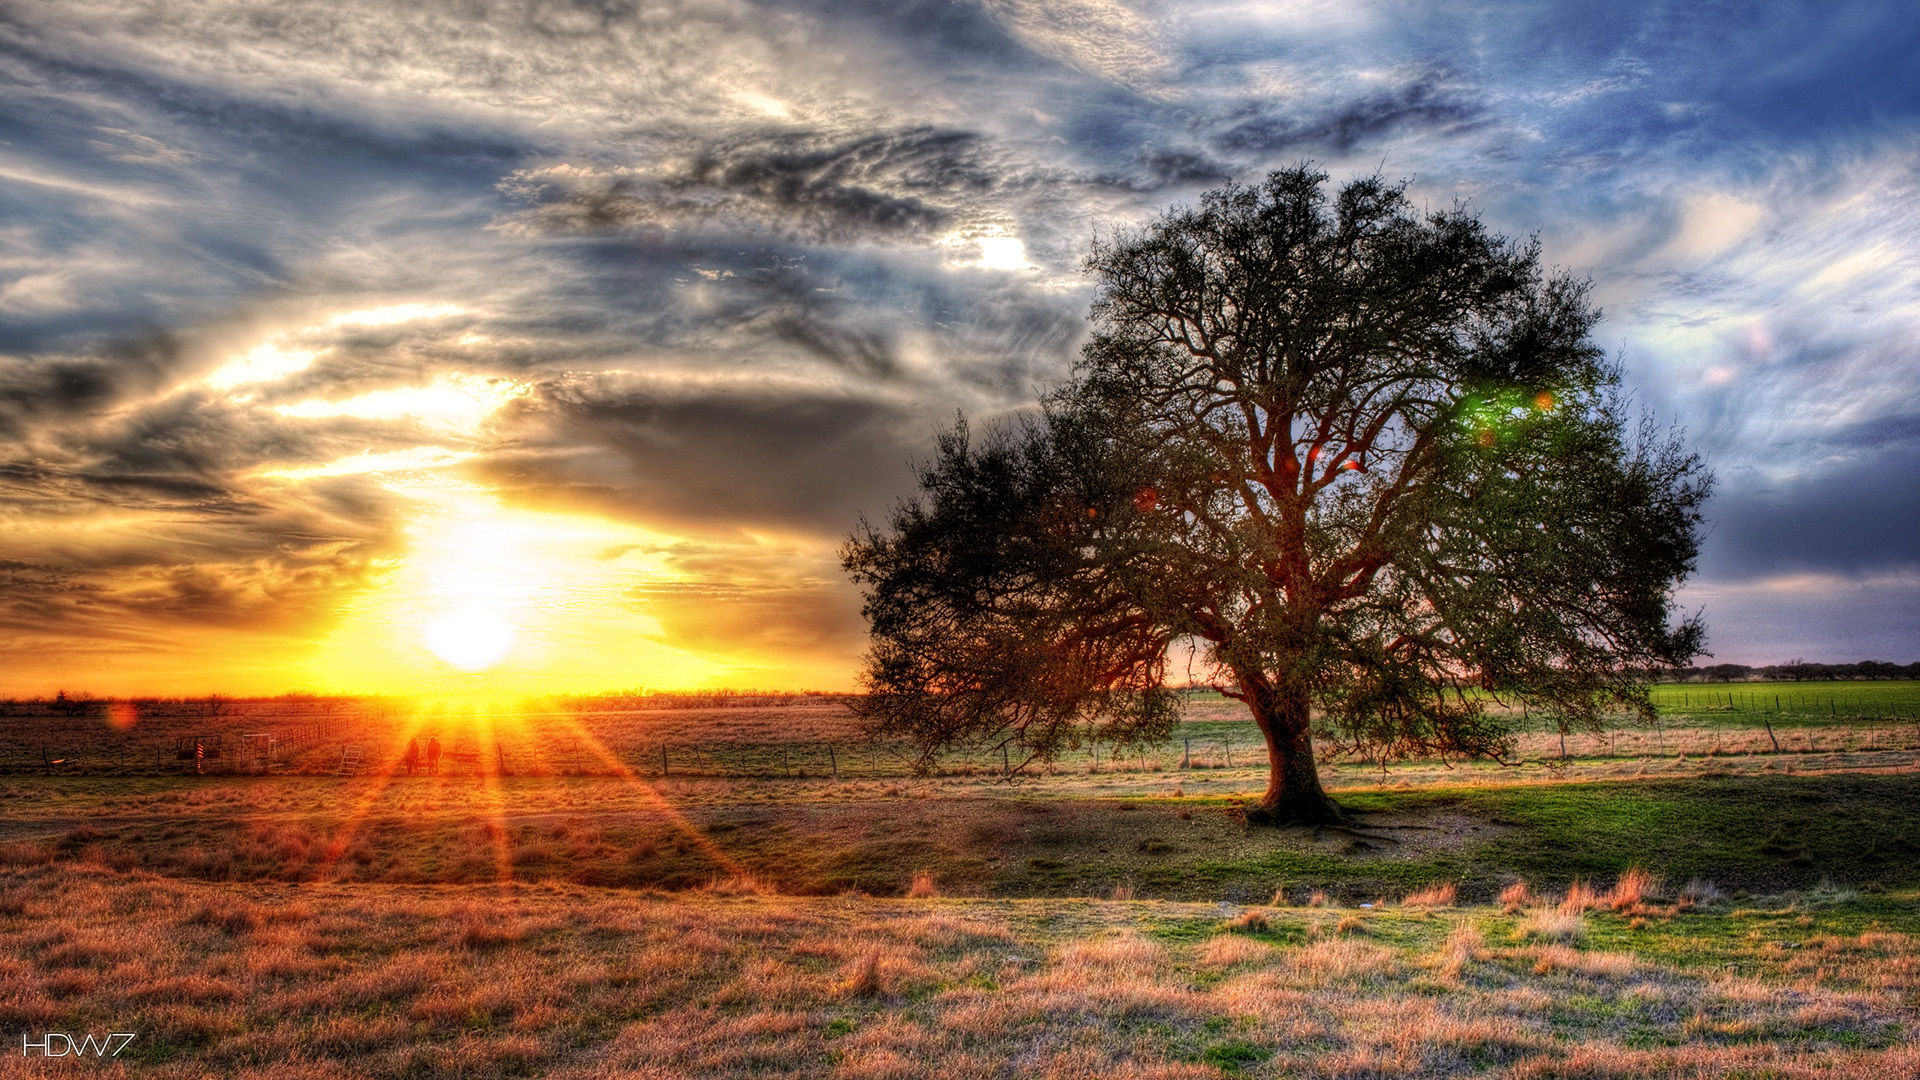 A tree with sunset in the background in hdr glory hd wallpaper a tree with sunset in the background in hdr glory thecheapjerseys Image collections